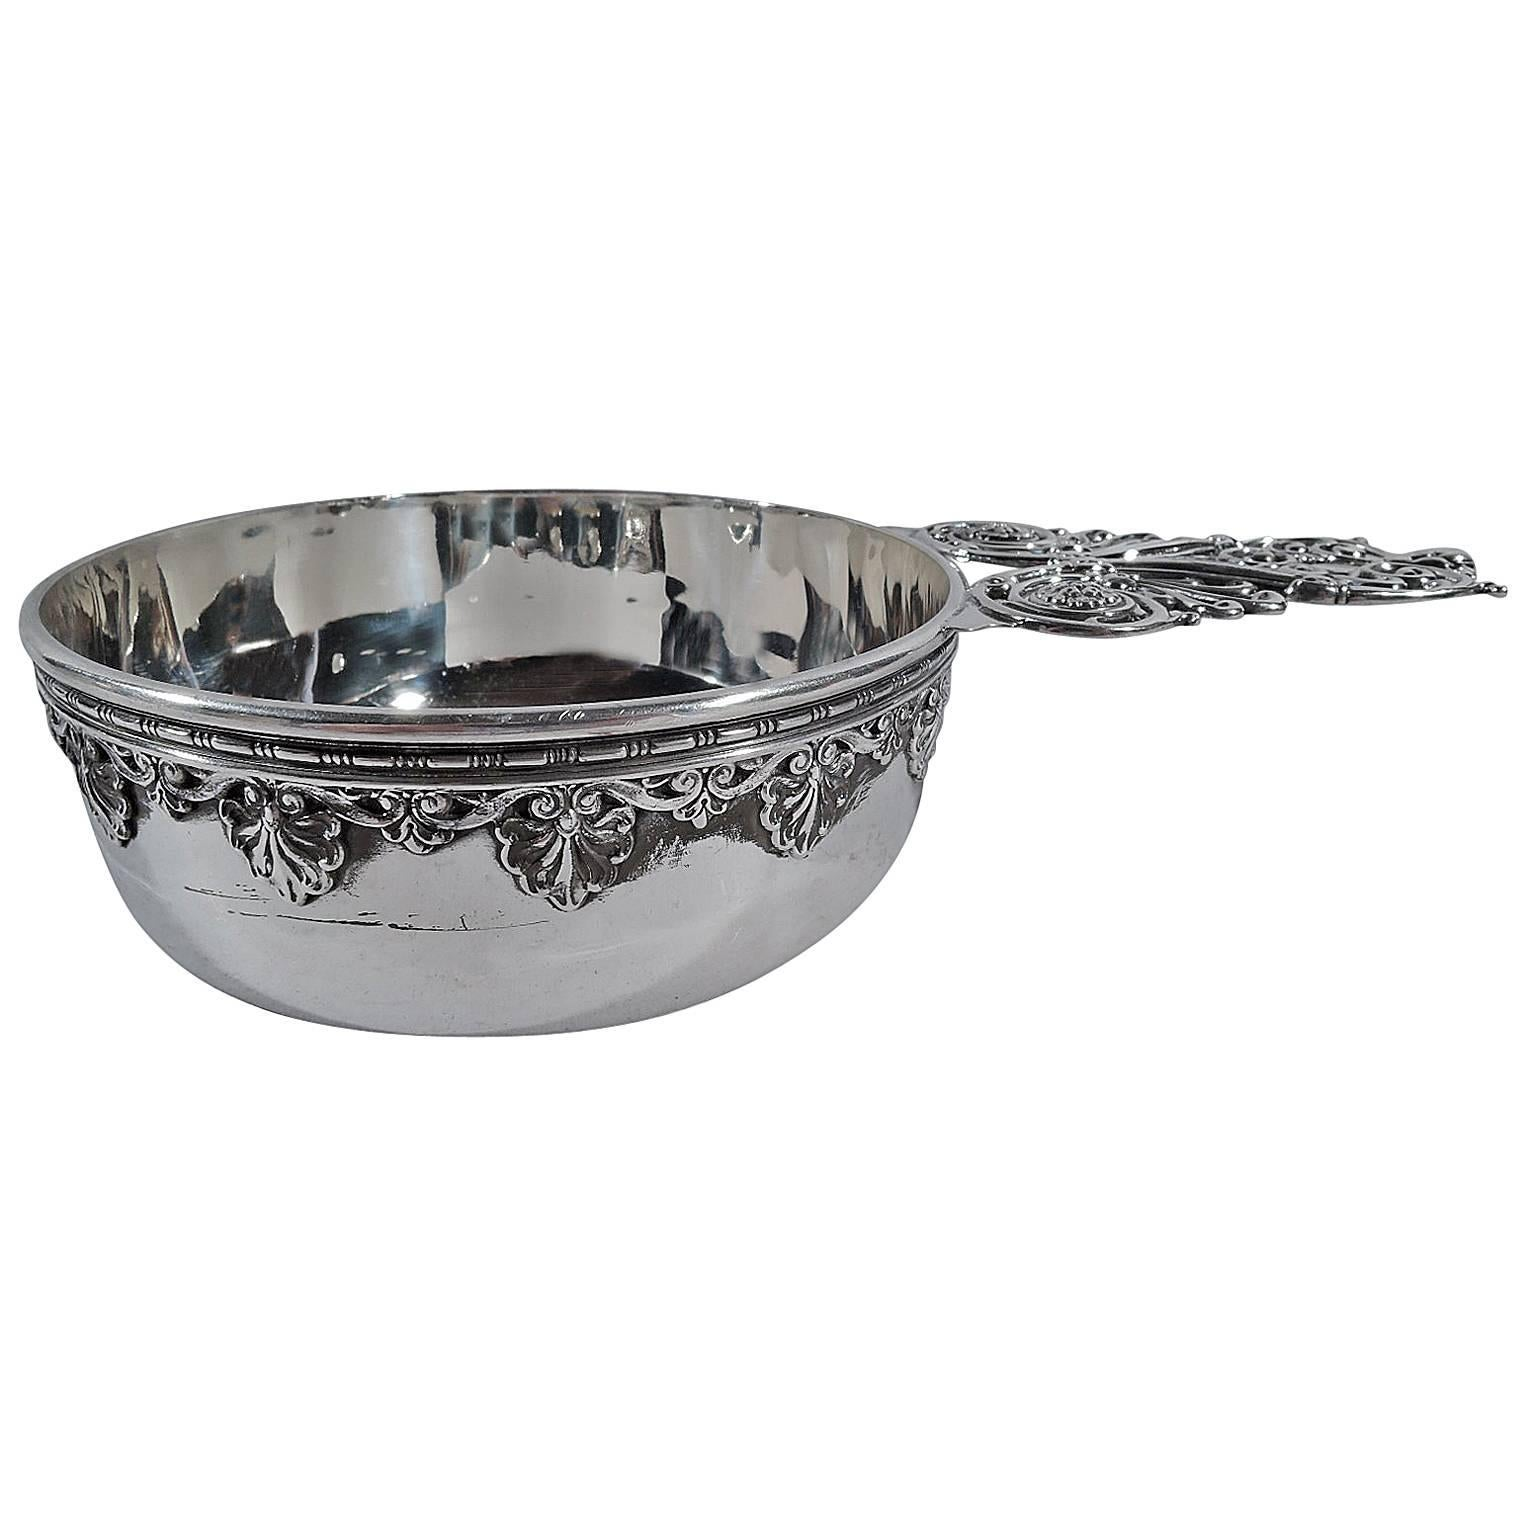 Fancy Classical Sterling Silver Porringer by Whiting